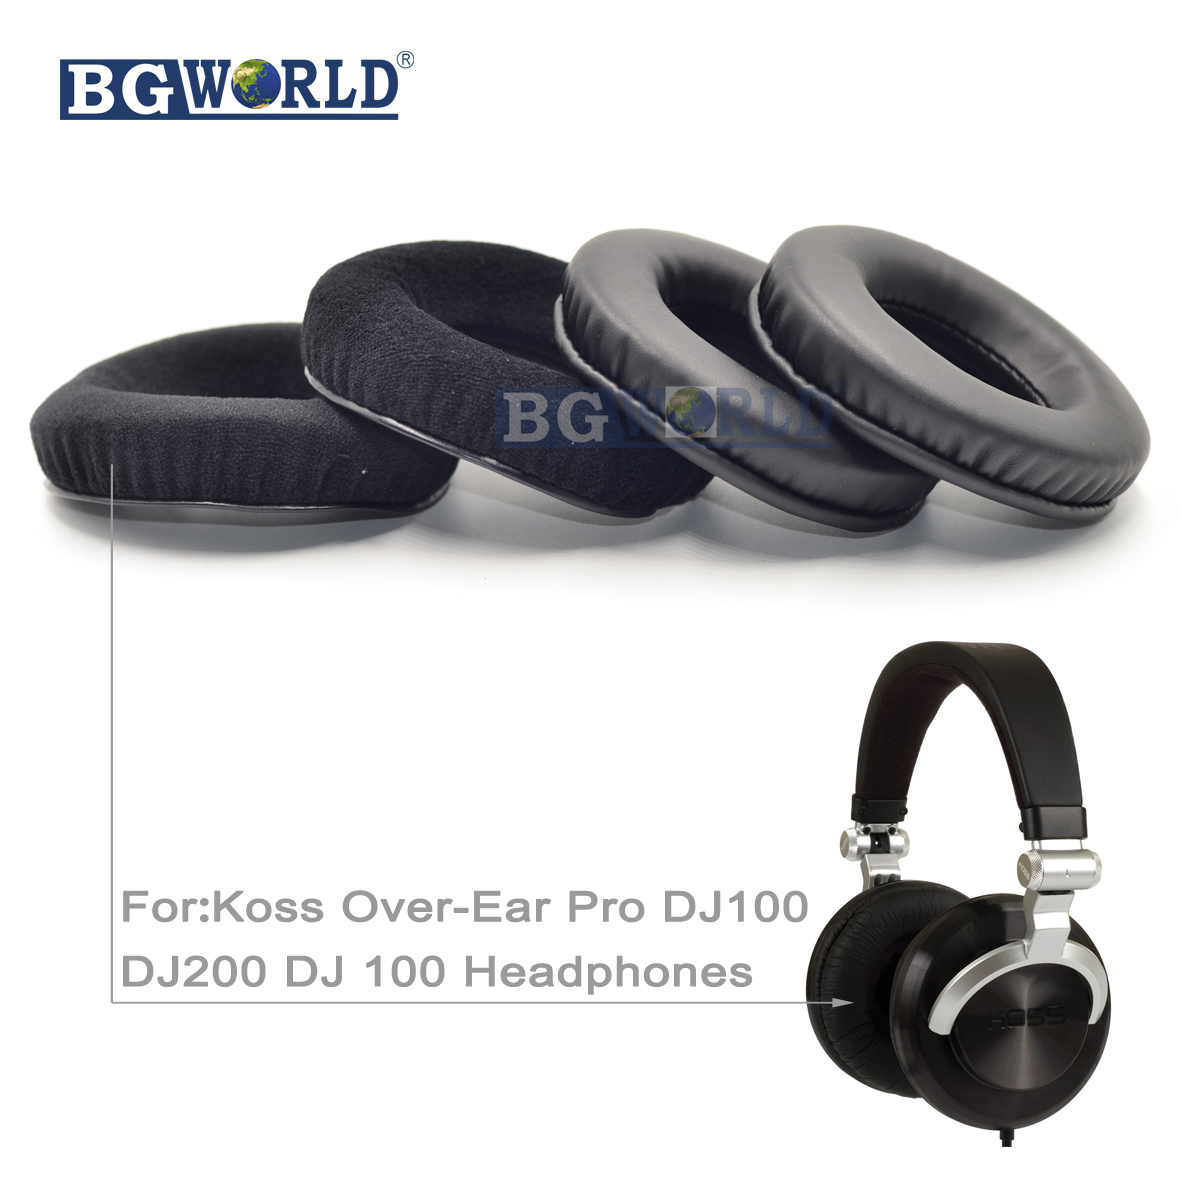 BGWORLD Replacement cushion ear pads earpads foam for Koss Over-Ear Pro DJ100 DJ200 DJ 100 Headphones part sponge